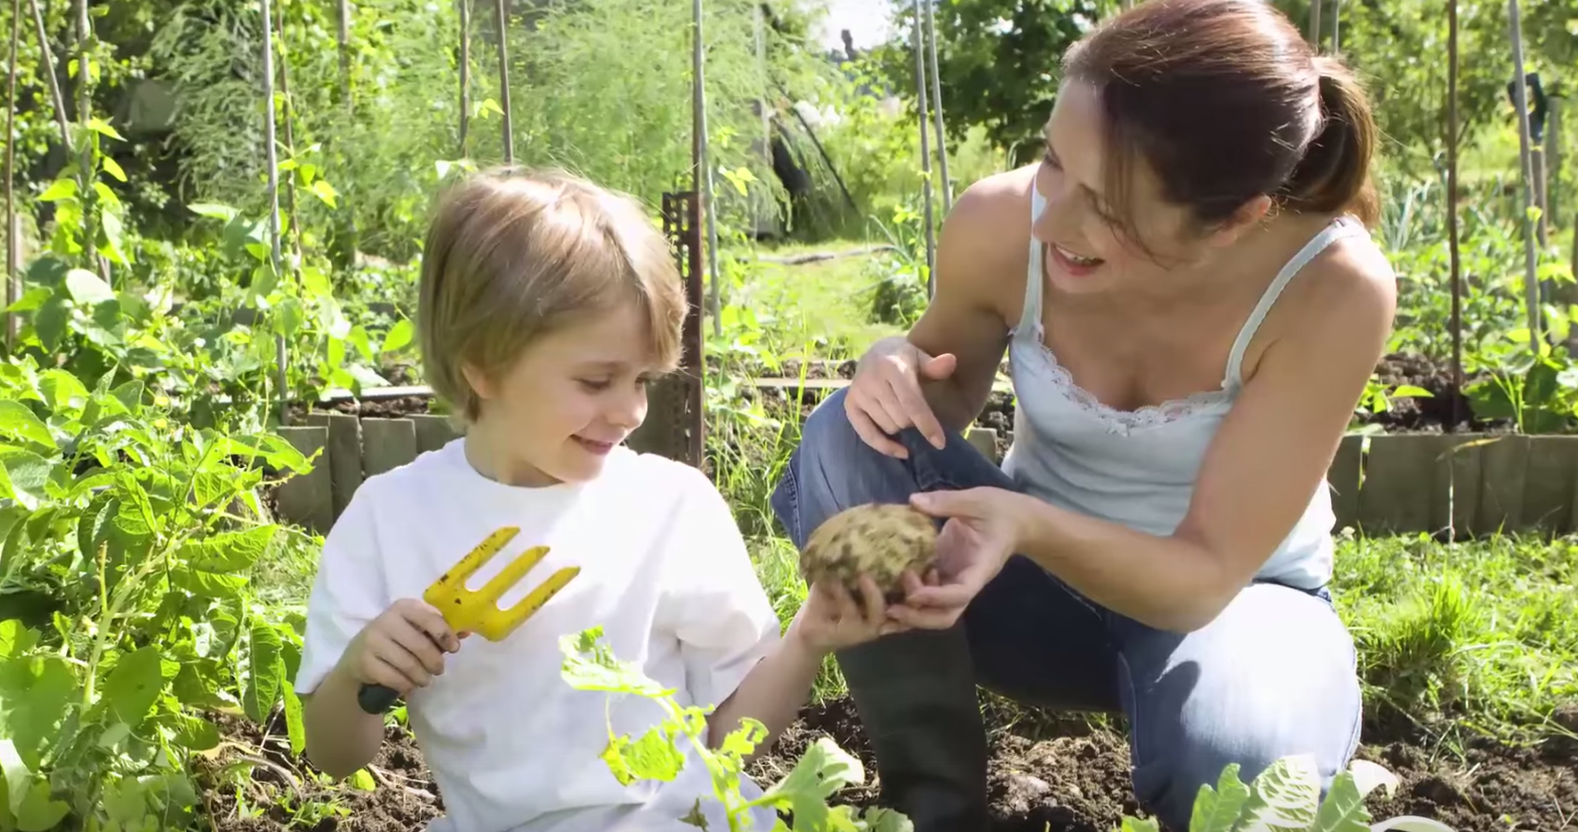 Find Out Why You Should Be Growing a Garden with Your Kids. Watch the Video. We filmed my twins in the garden having a great time, while I talk about the benefits. It's a fun watch!